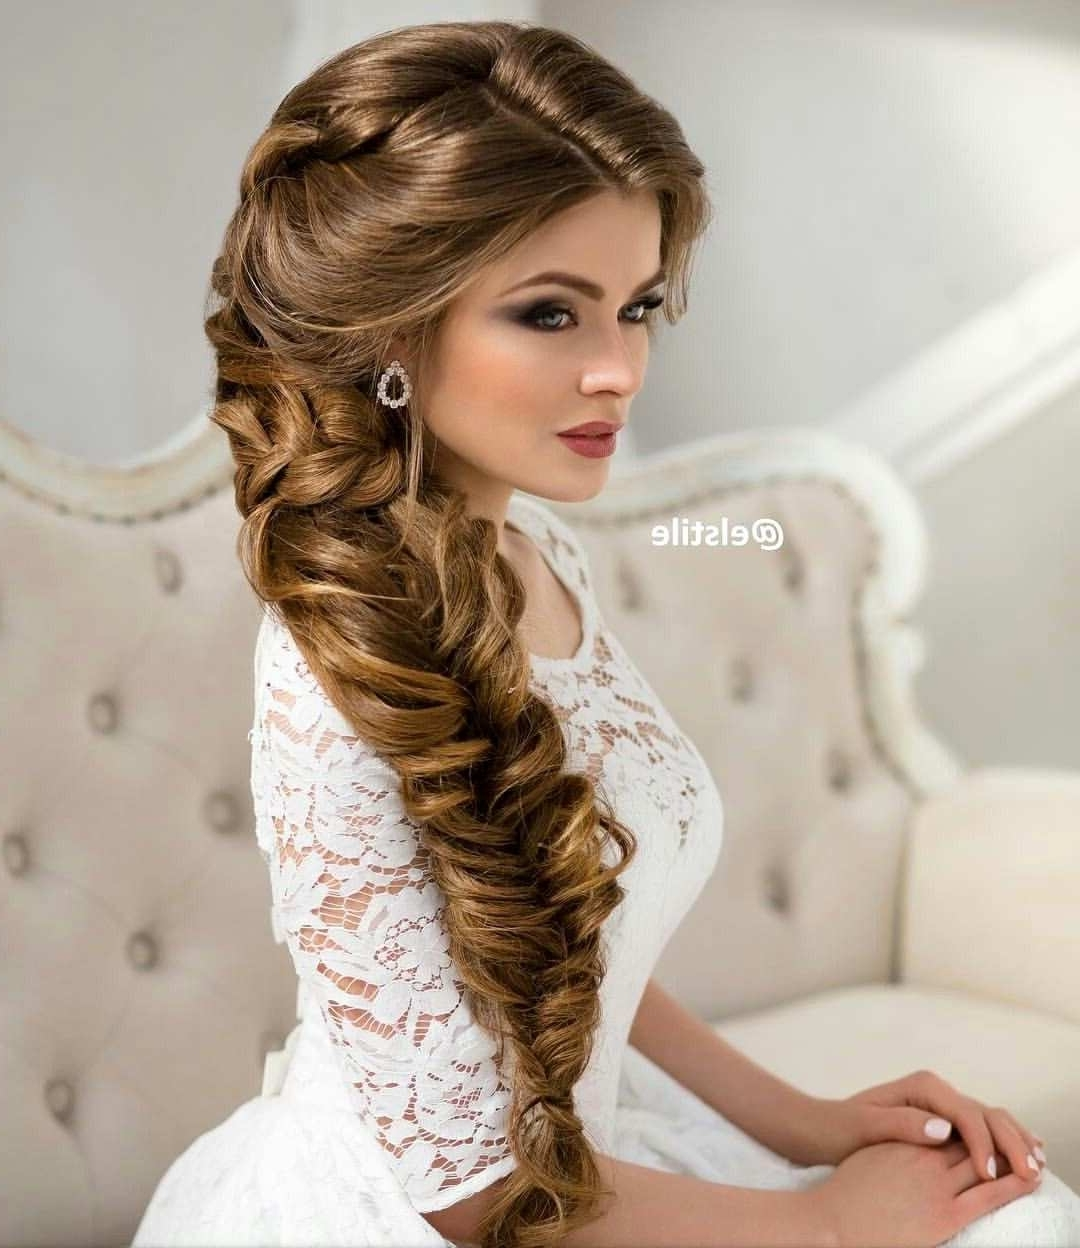 Fishtail Braid Wedding Hairstyles: 2020 Latest Fishtail Braid Wedding Hairstyles